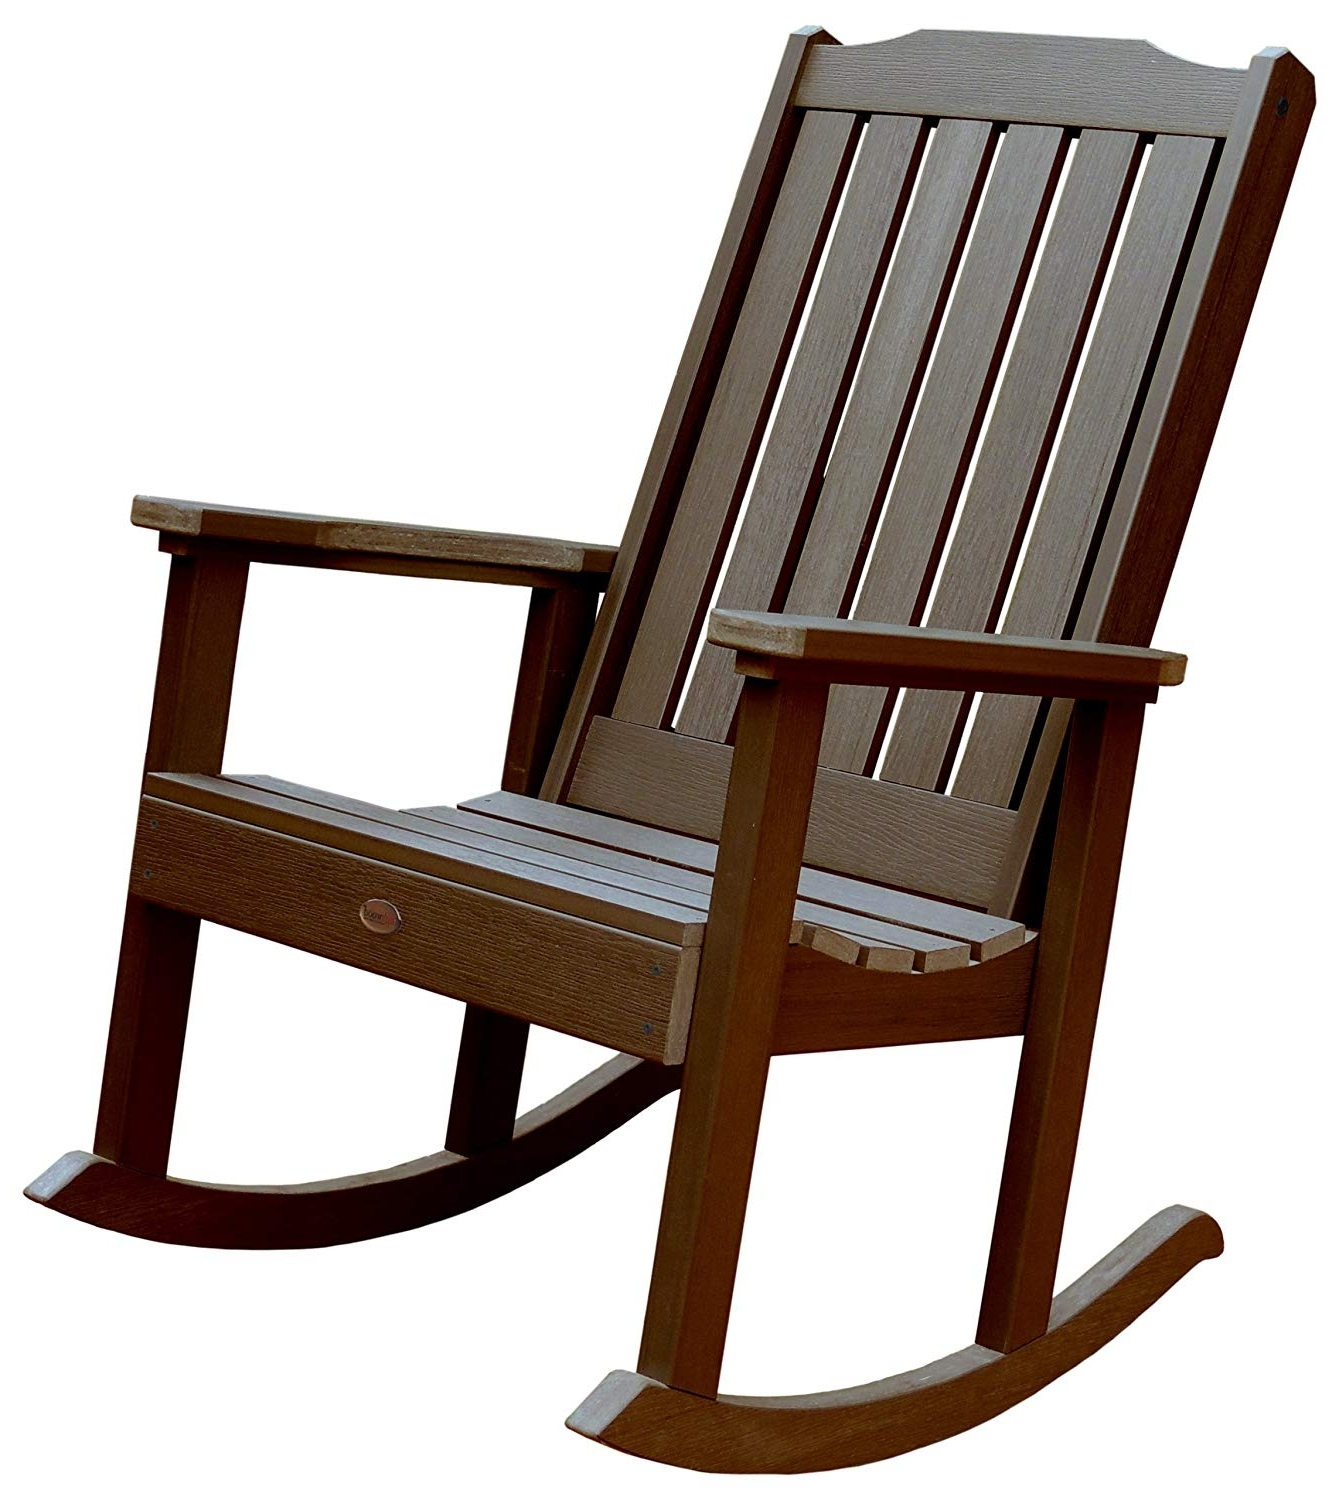 Favorite Amazon : Highwood Lehigh Rocking Chair, Weathered Acorn : Patio Pertaining To Patio Rocking Chairs With Covers (View 15 of 15)